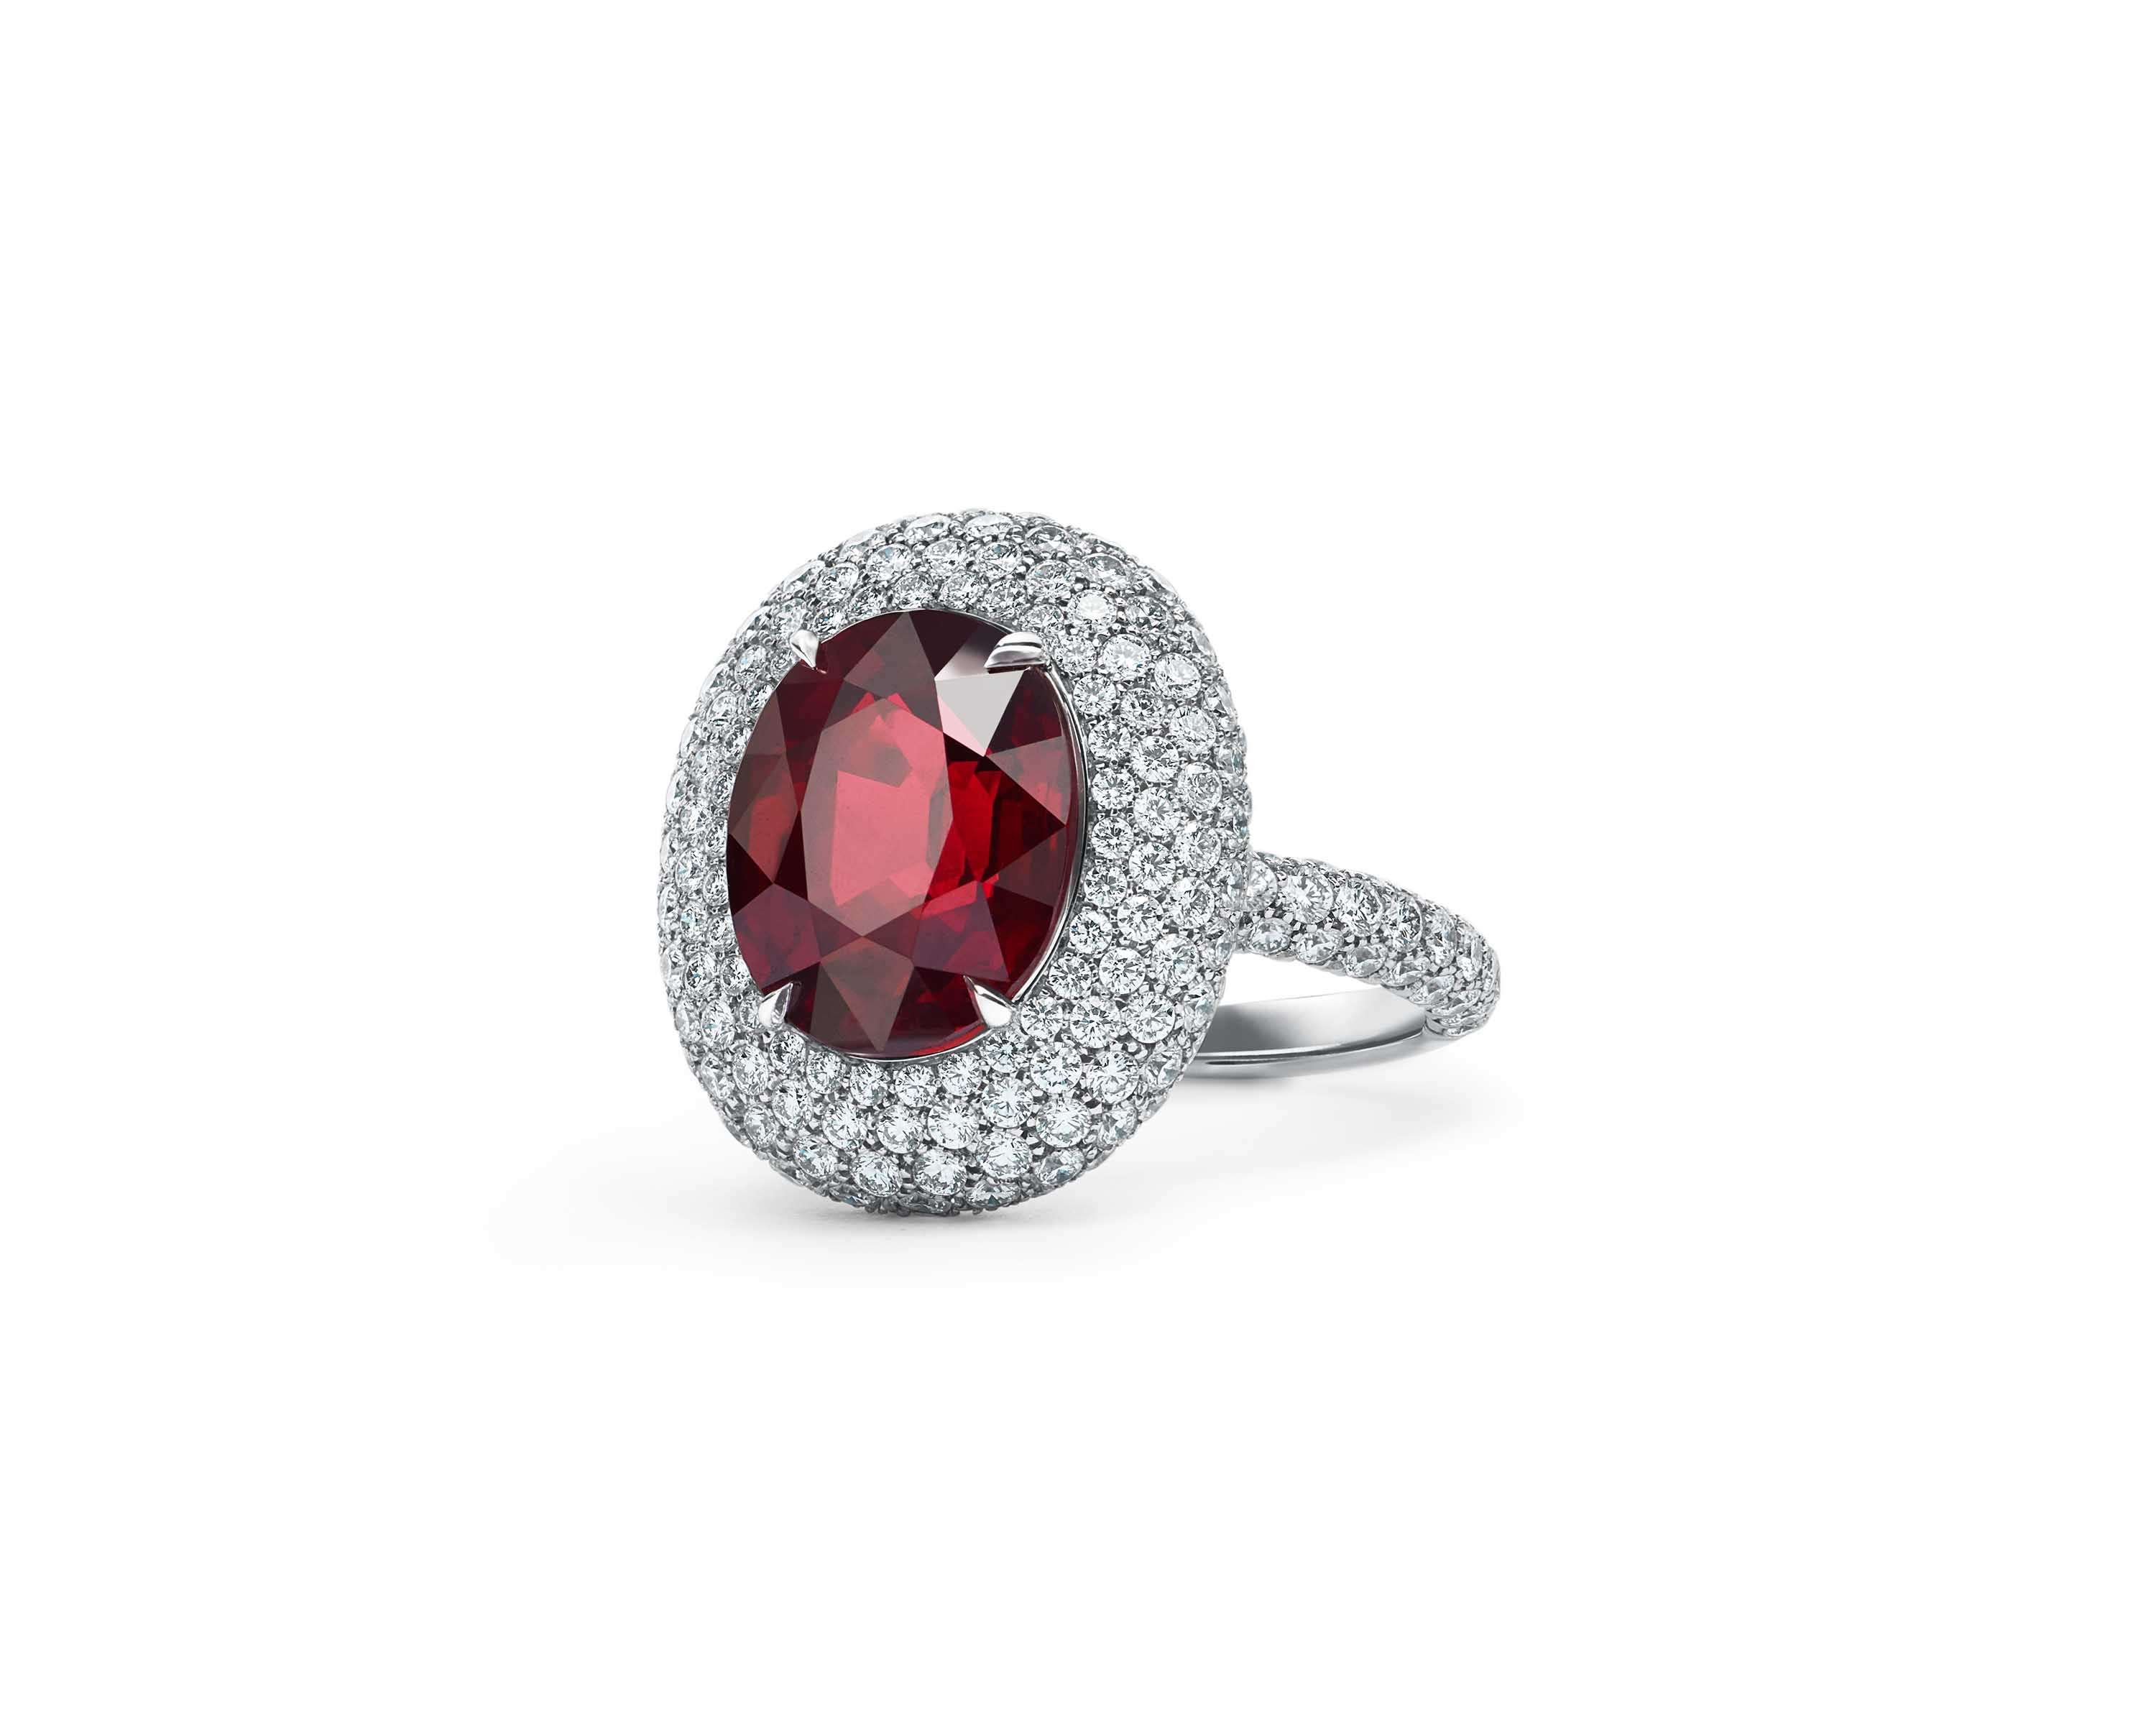 Tiffany & Co. ring in platinum with a ruby of over 6 carats and round brilliant diamonds